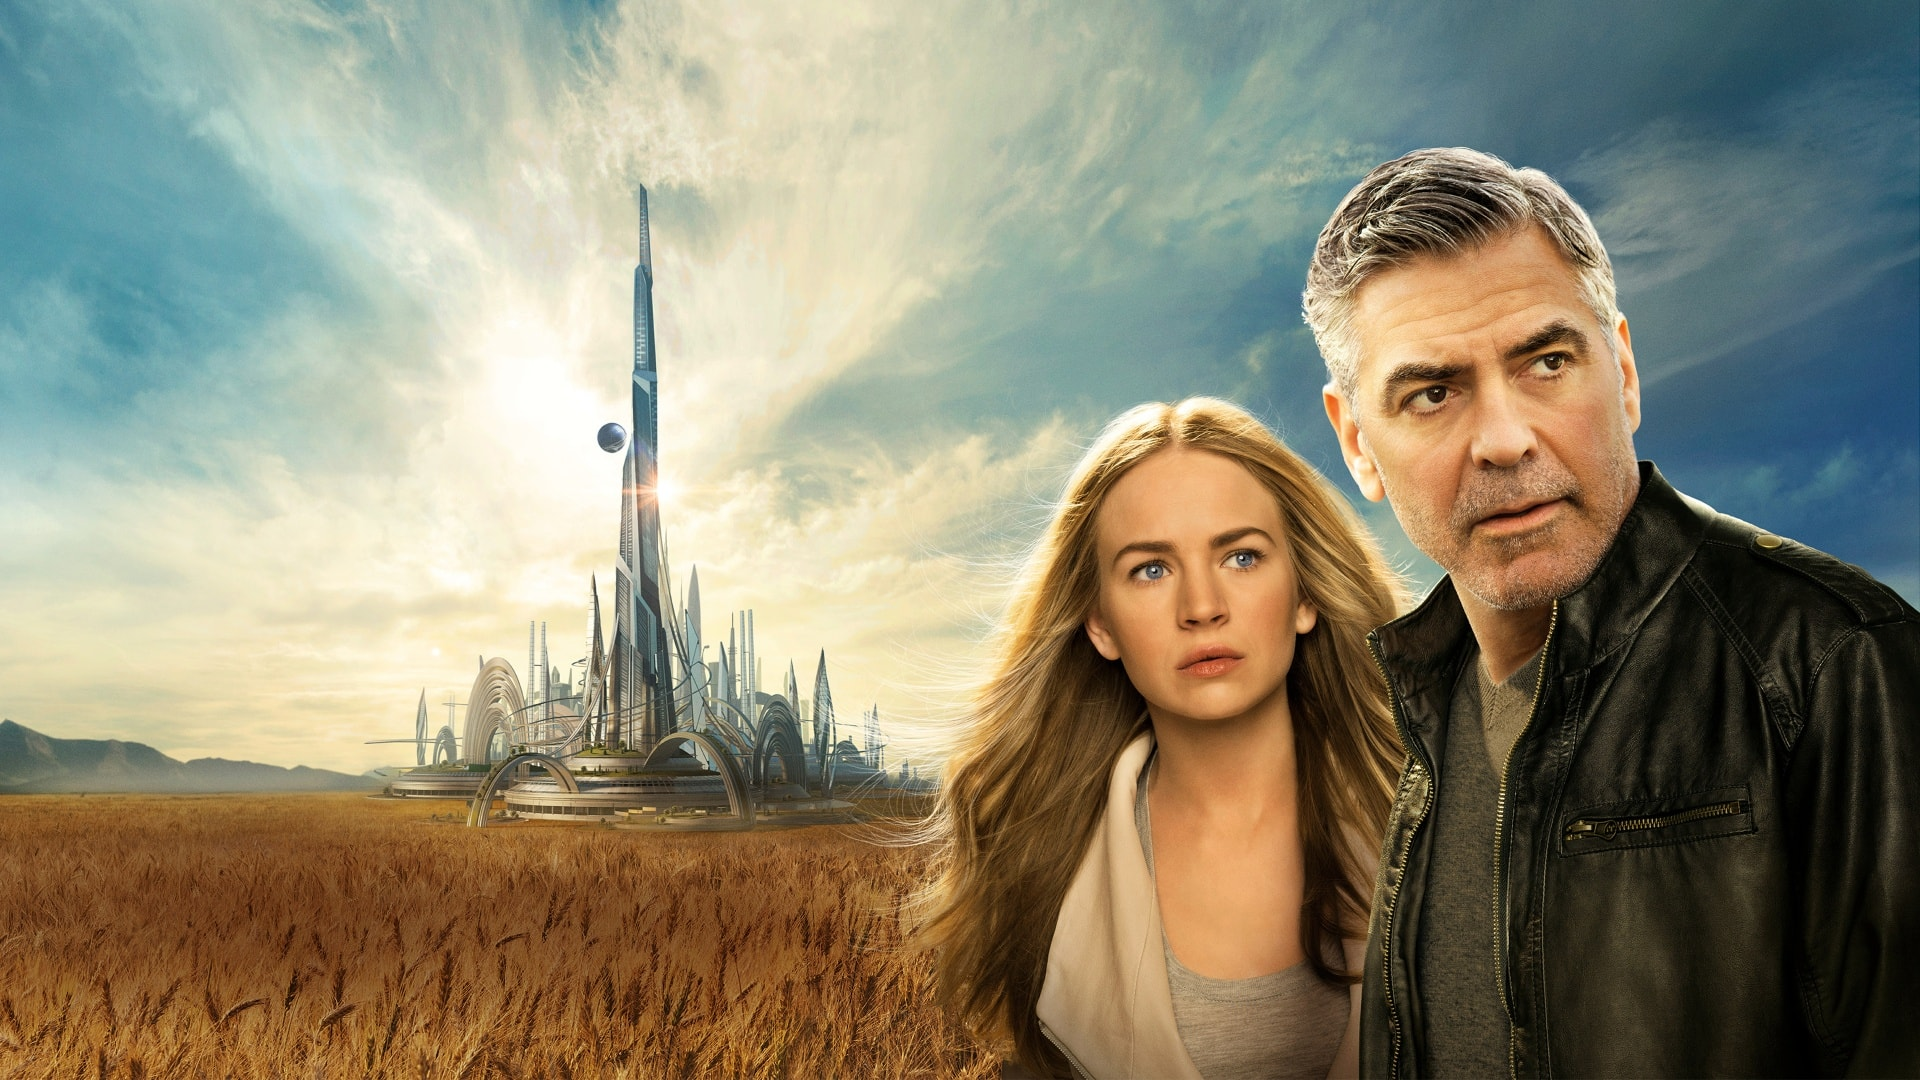 Tomorrowland Desktop wallpapers